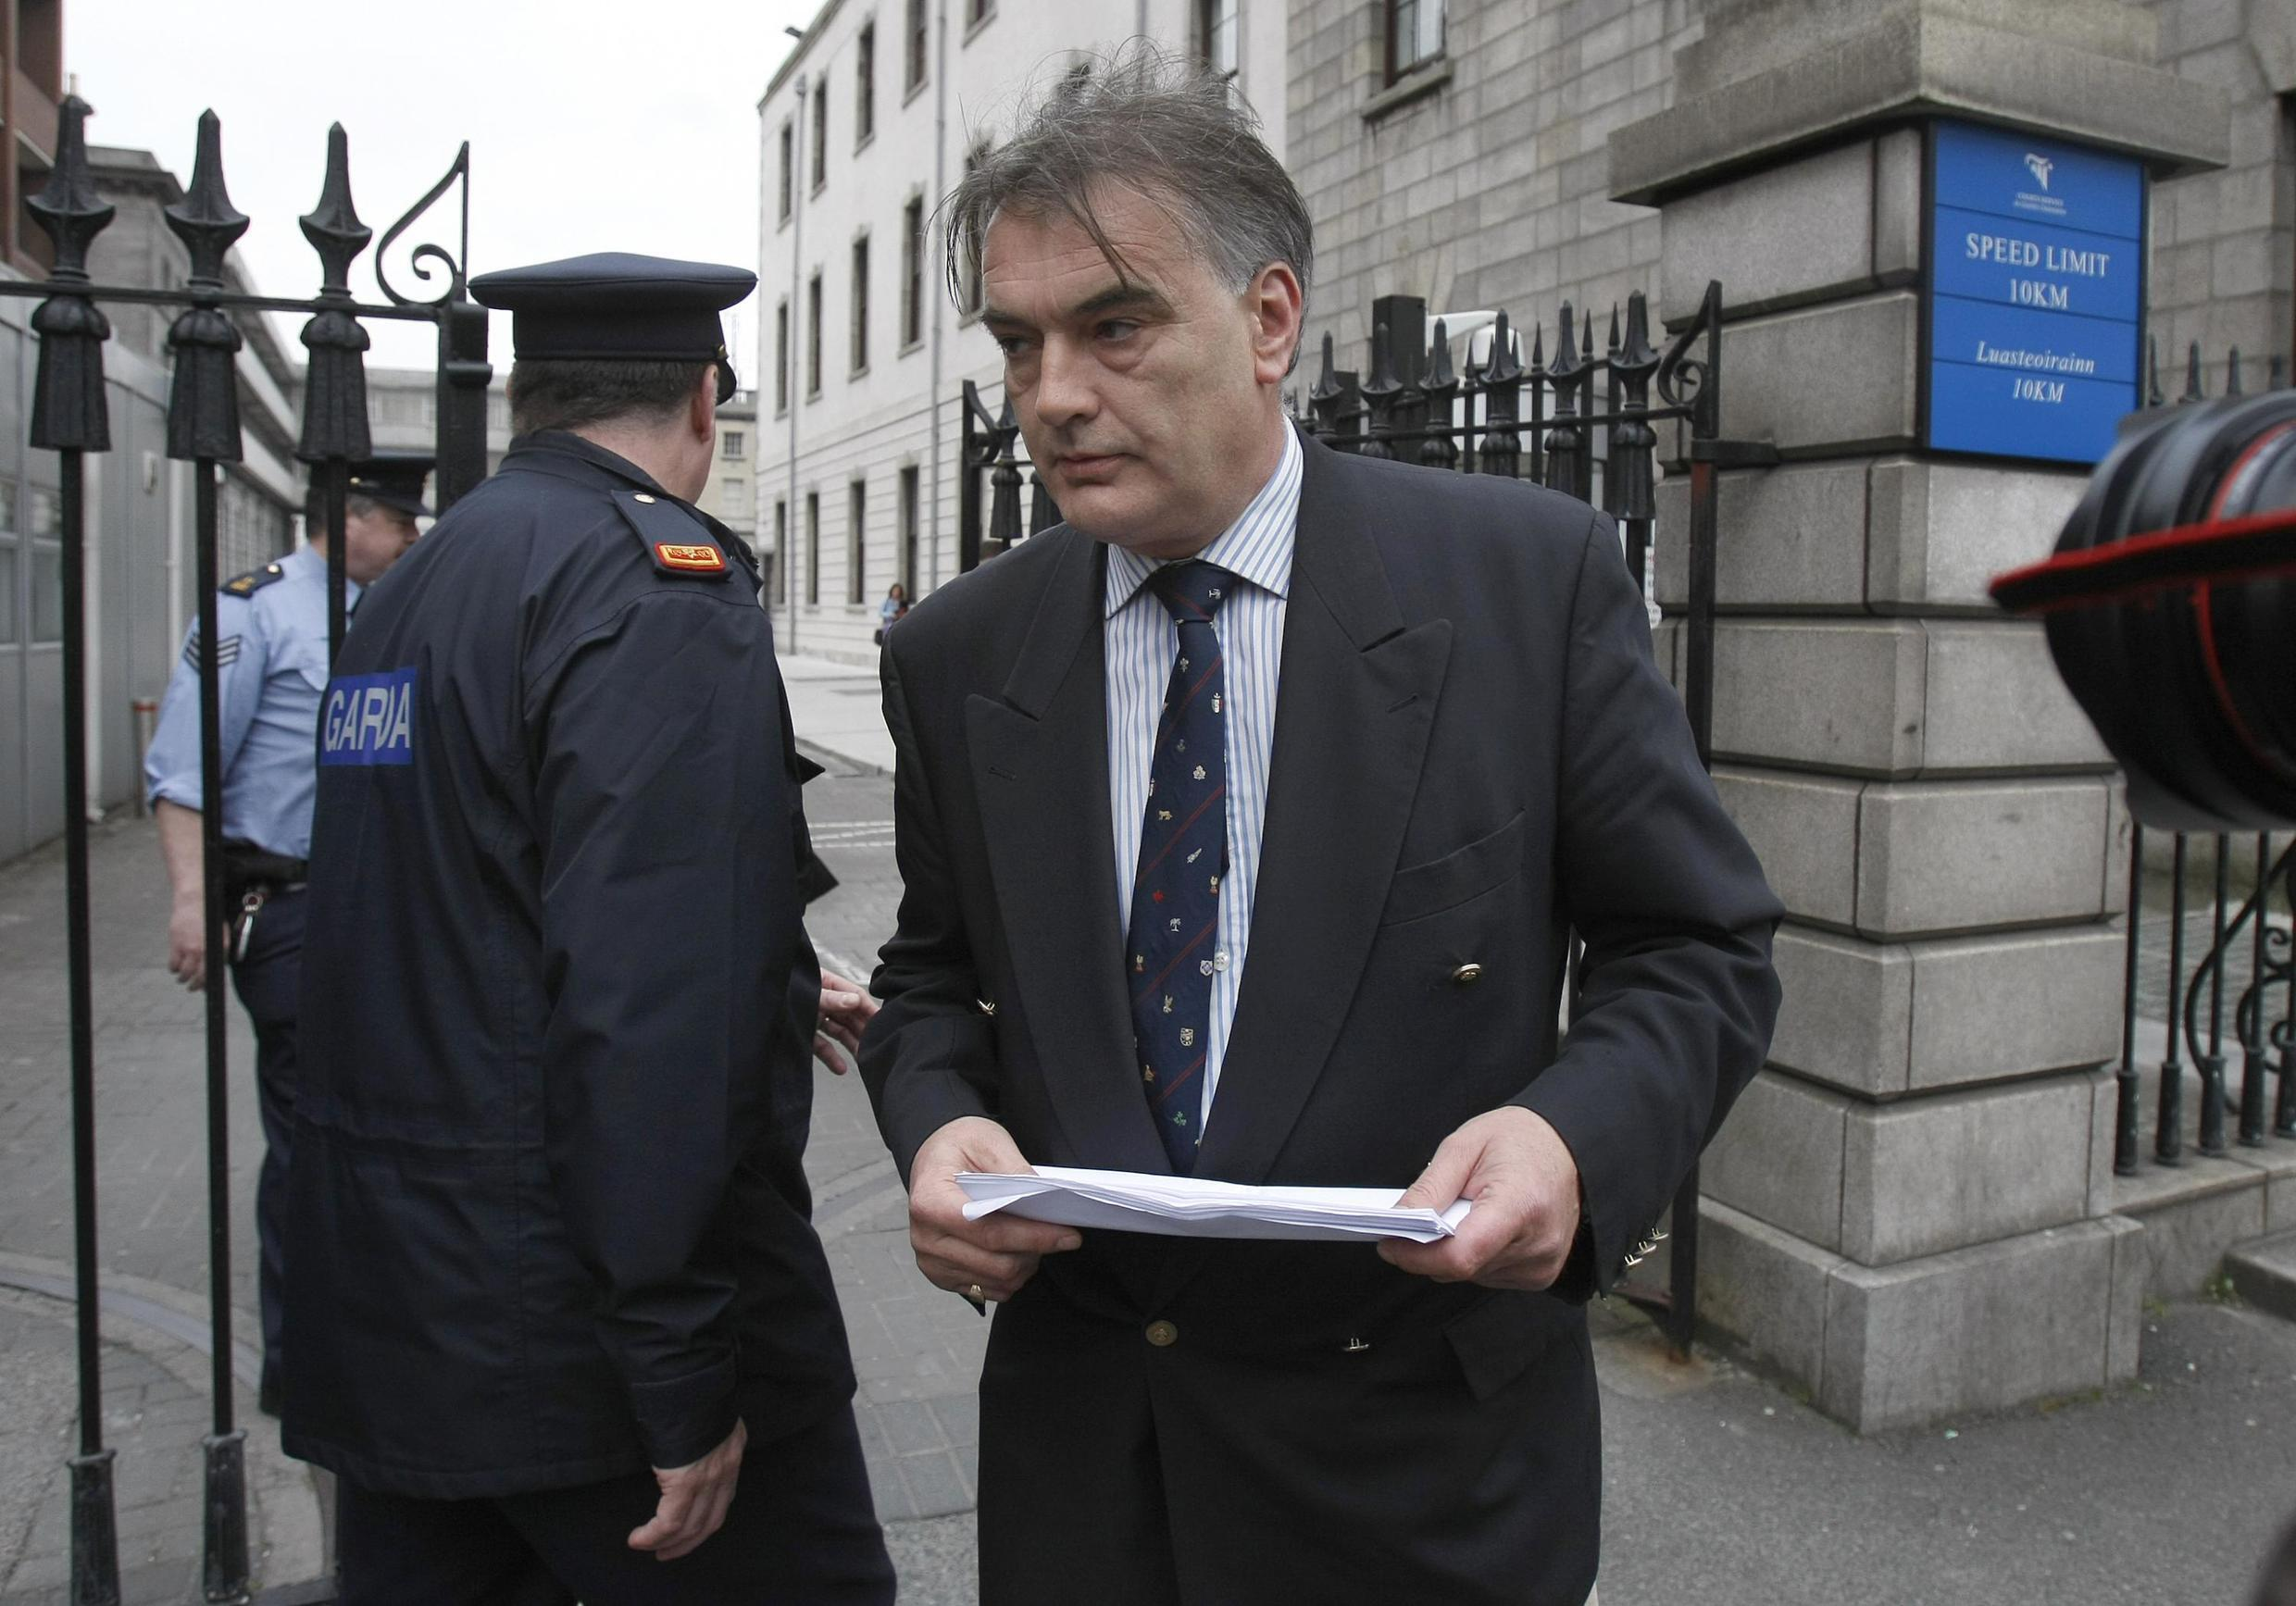 Ian Bailey at the High Court in Dublin following a European arrest warrant in connection with the death of Sophie Toscan du Plantier, 24 April 2010.